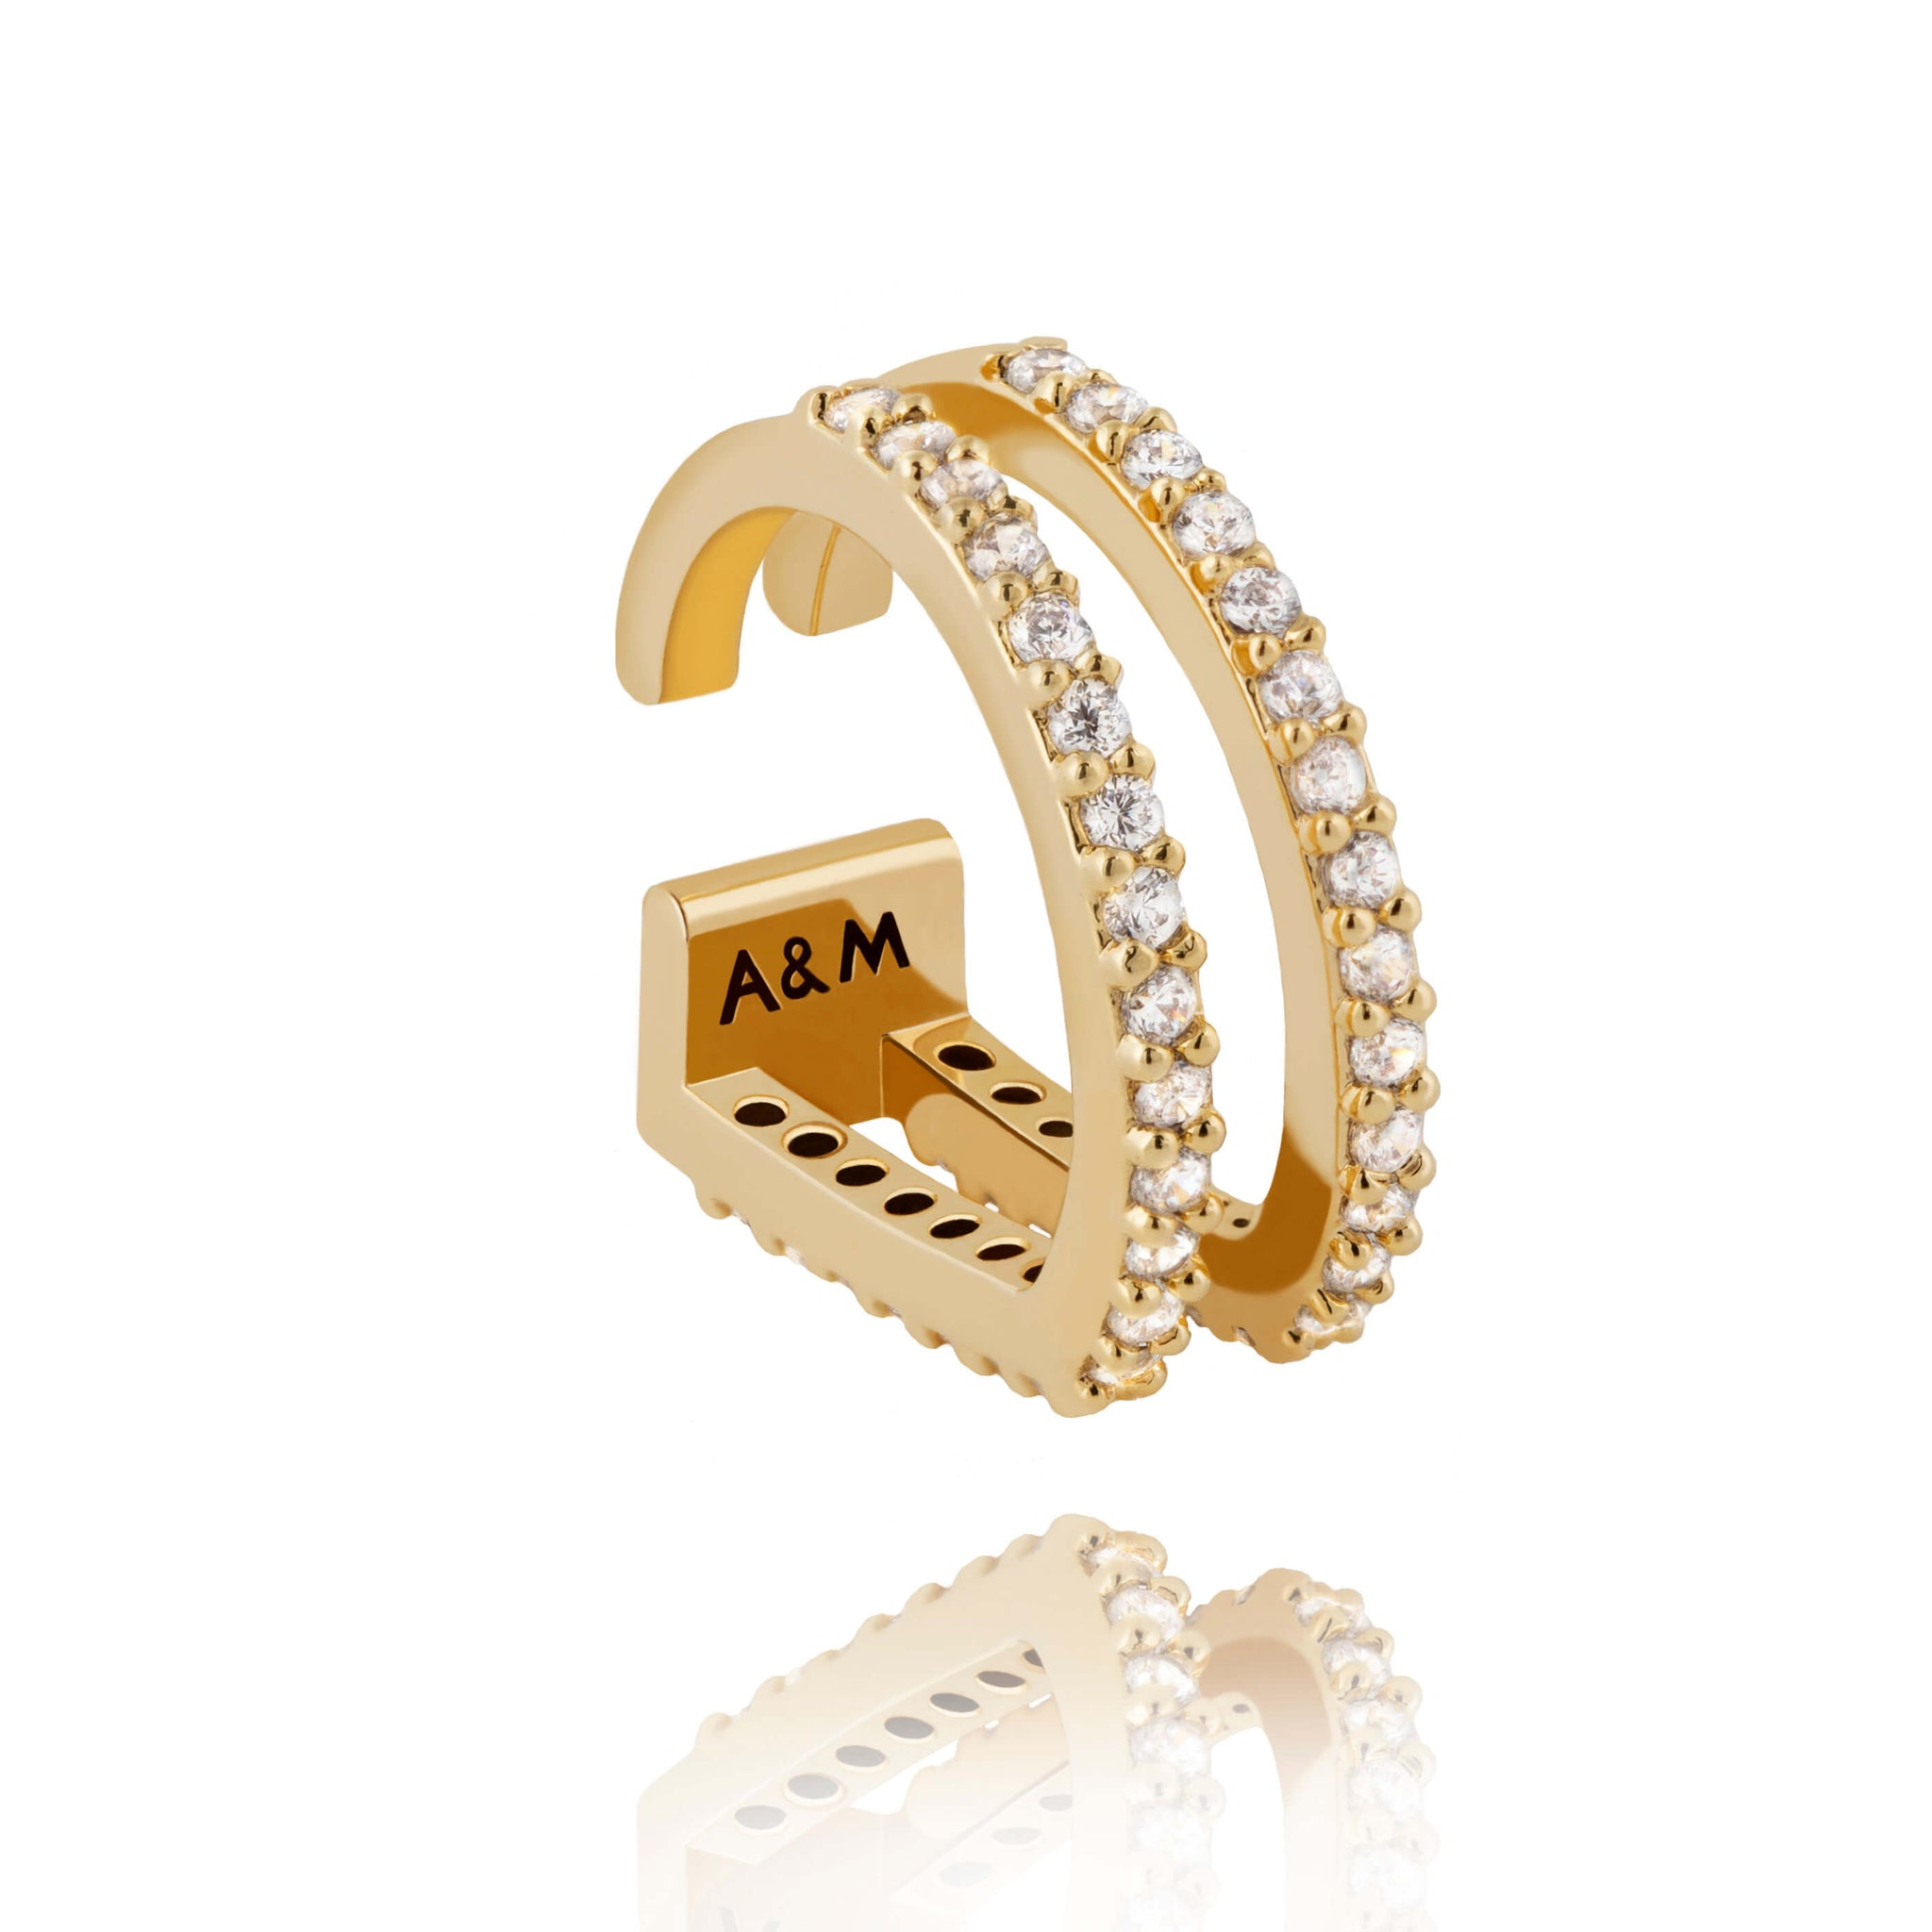 18k gold plated brass, diamanté encrusted ear cuff with two curved bars  Edit alt text